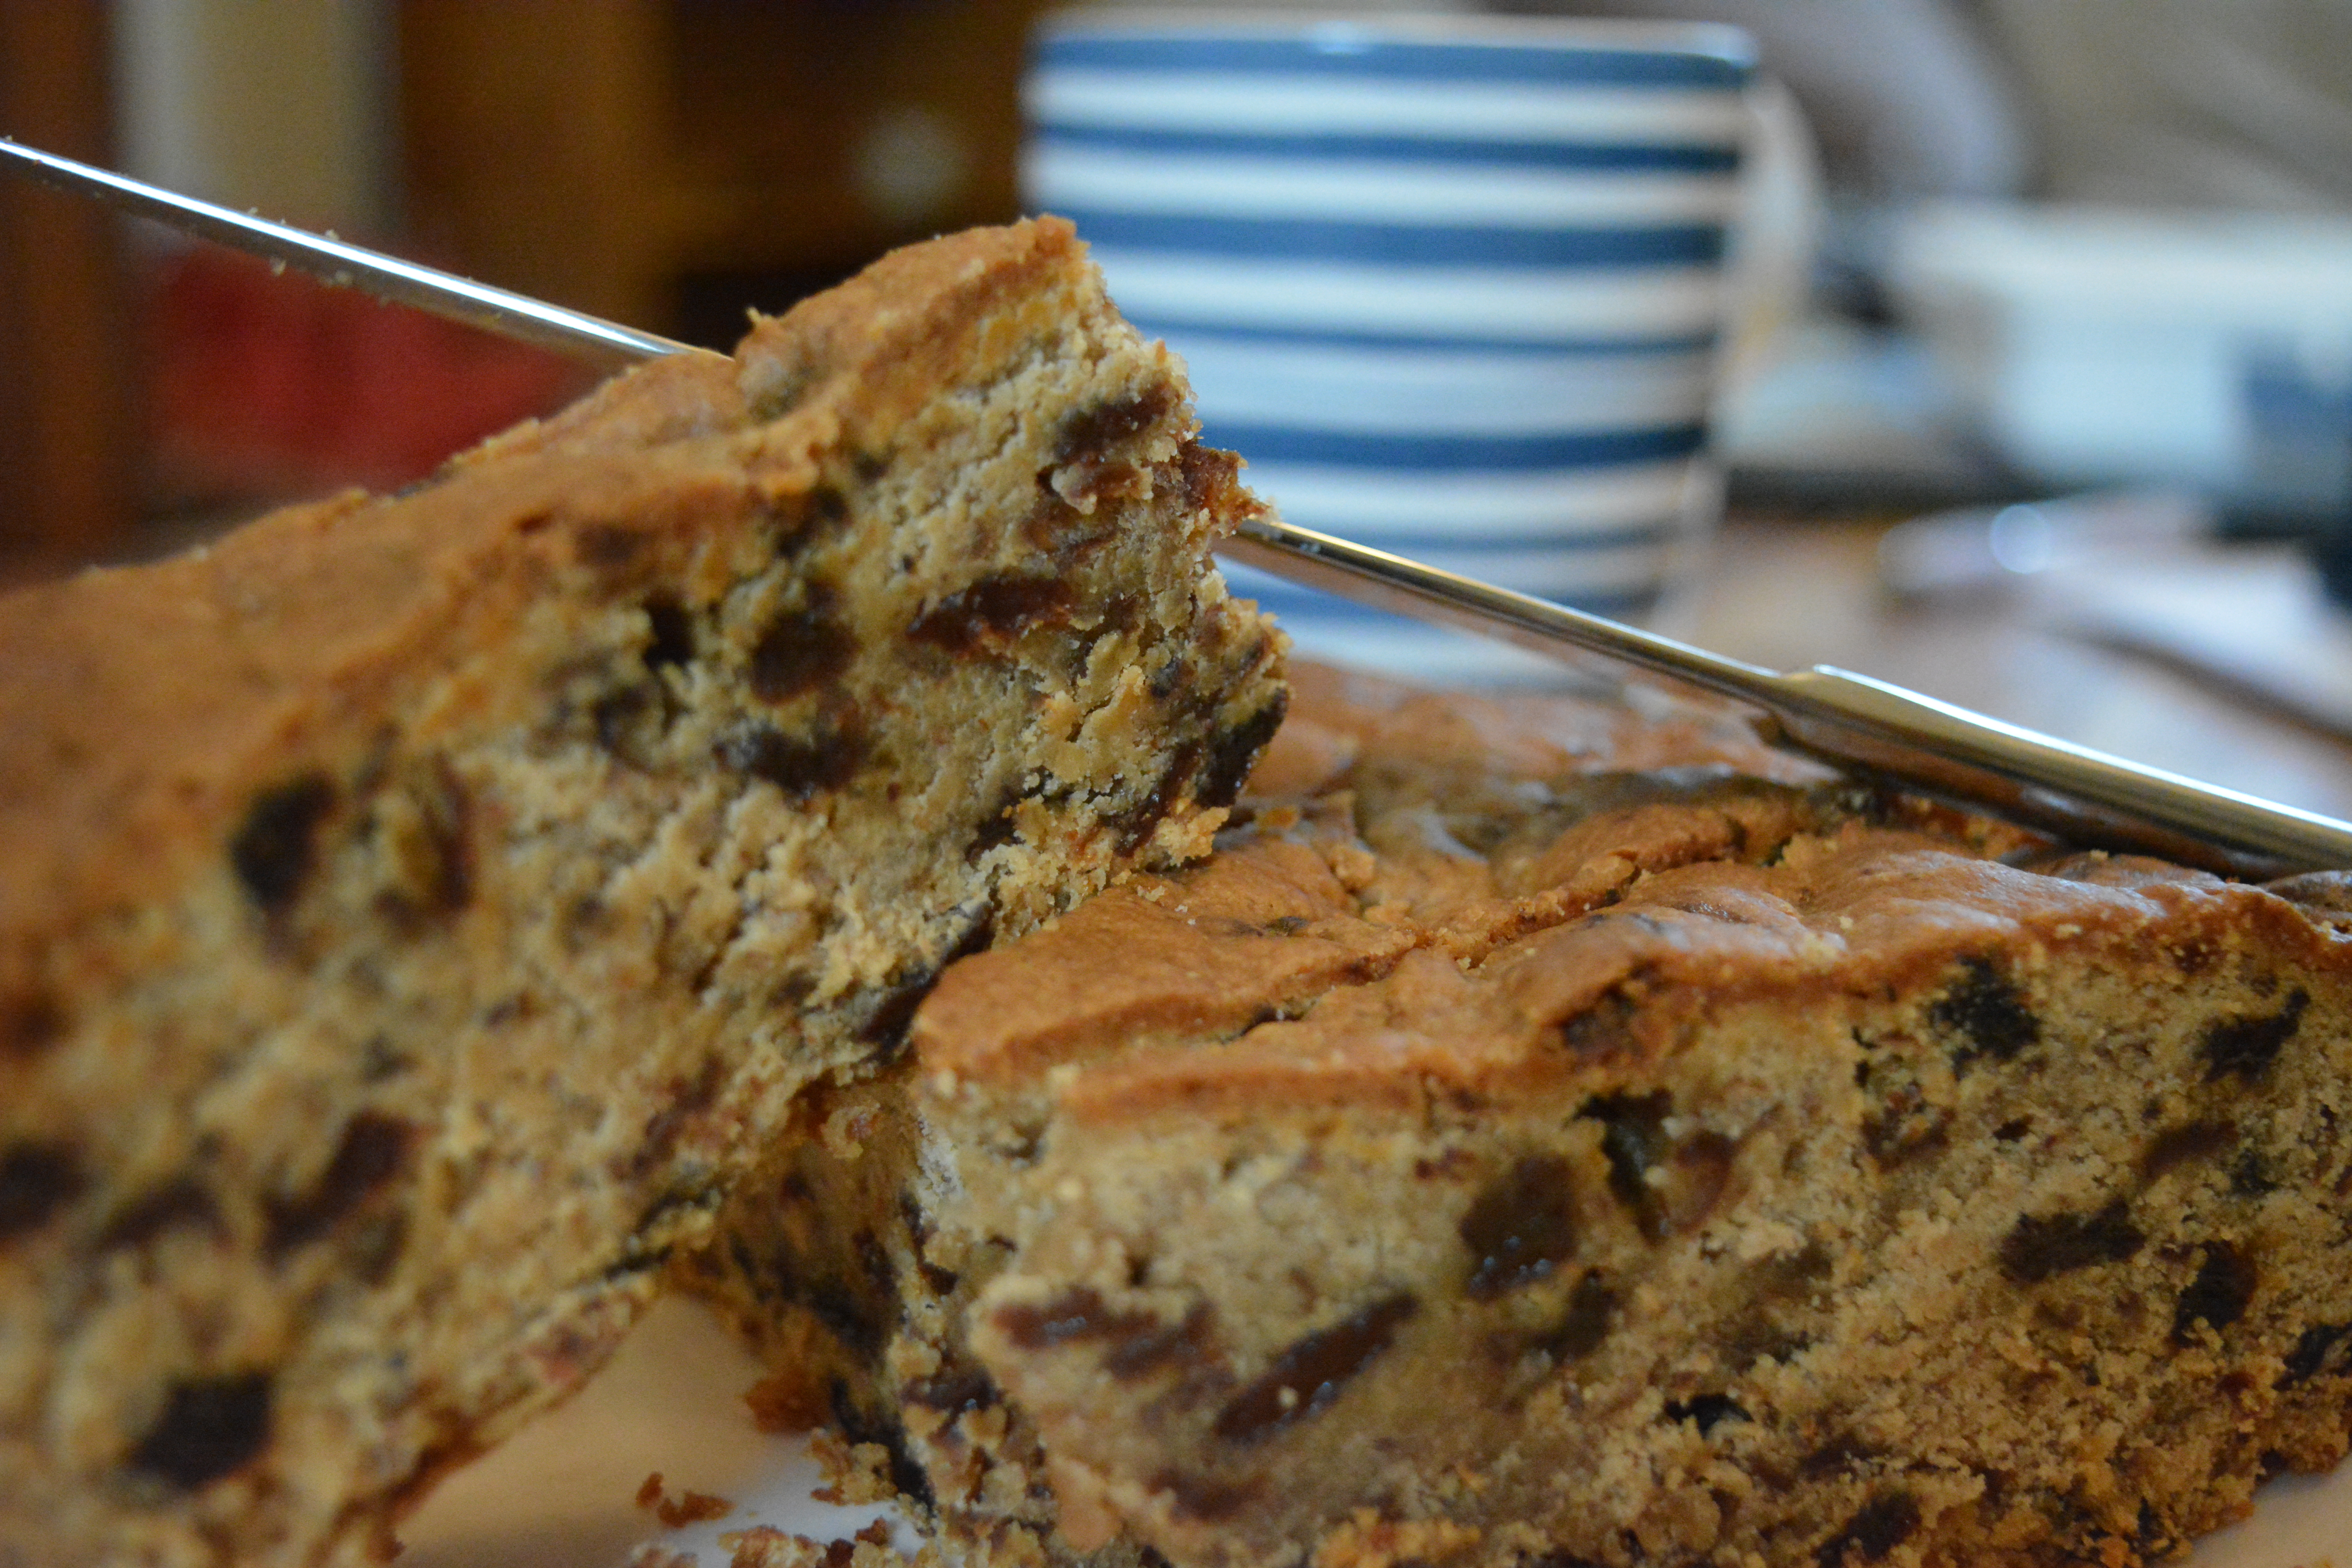 Two slices of Spiced Sultana Cake stacked upon each other